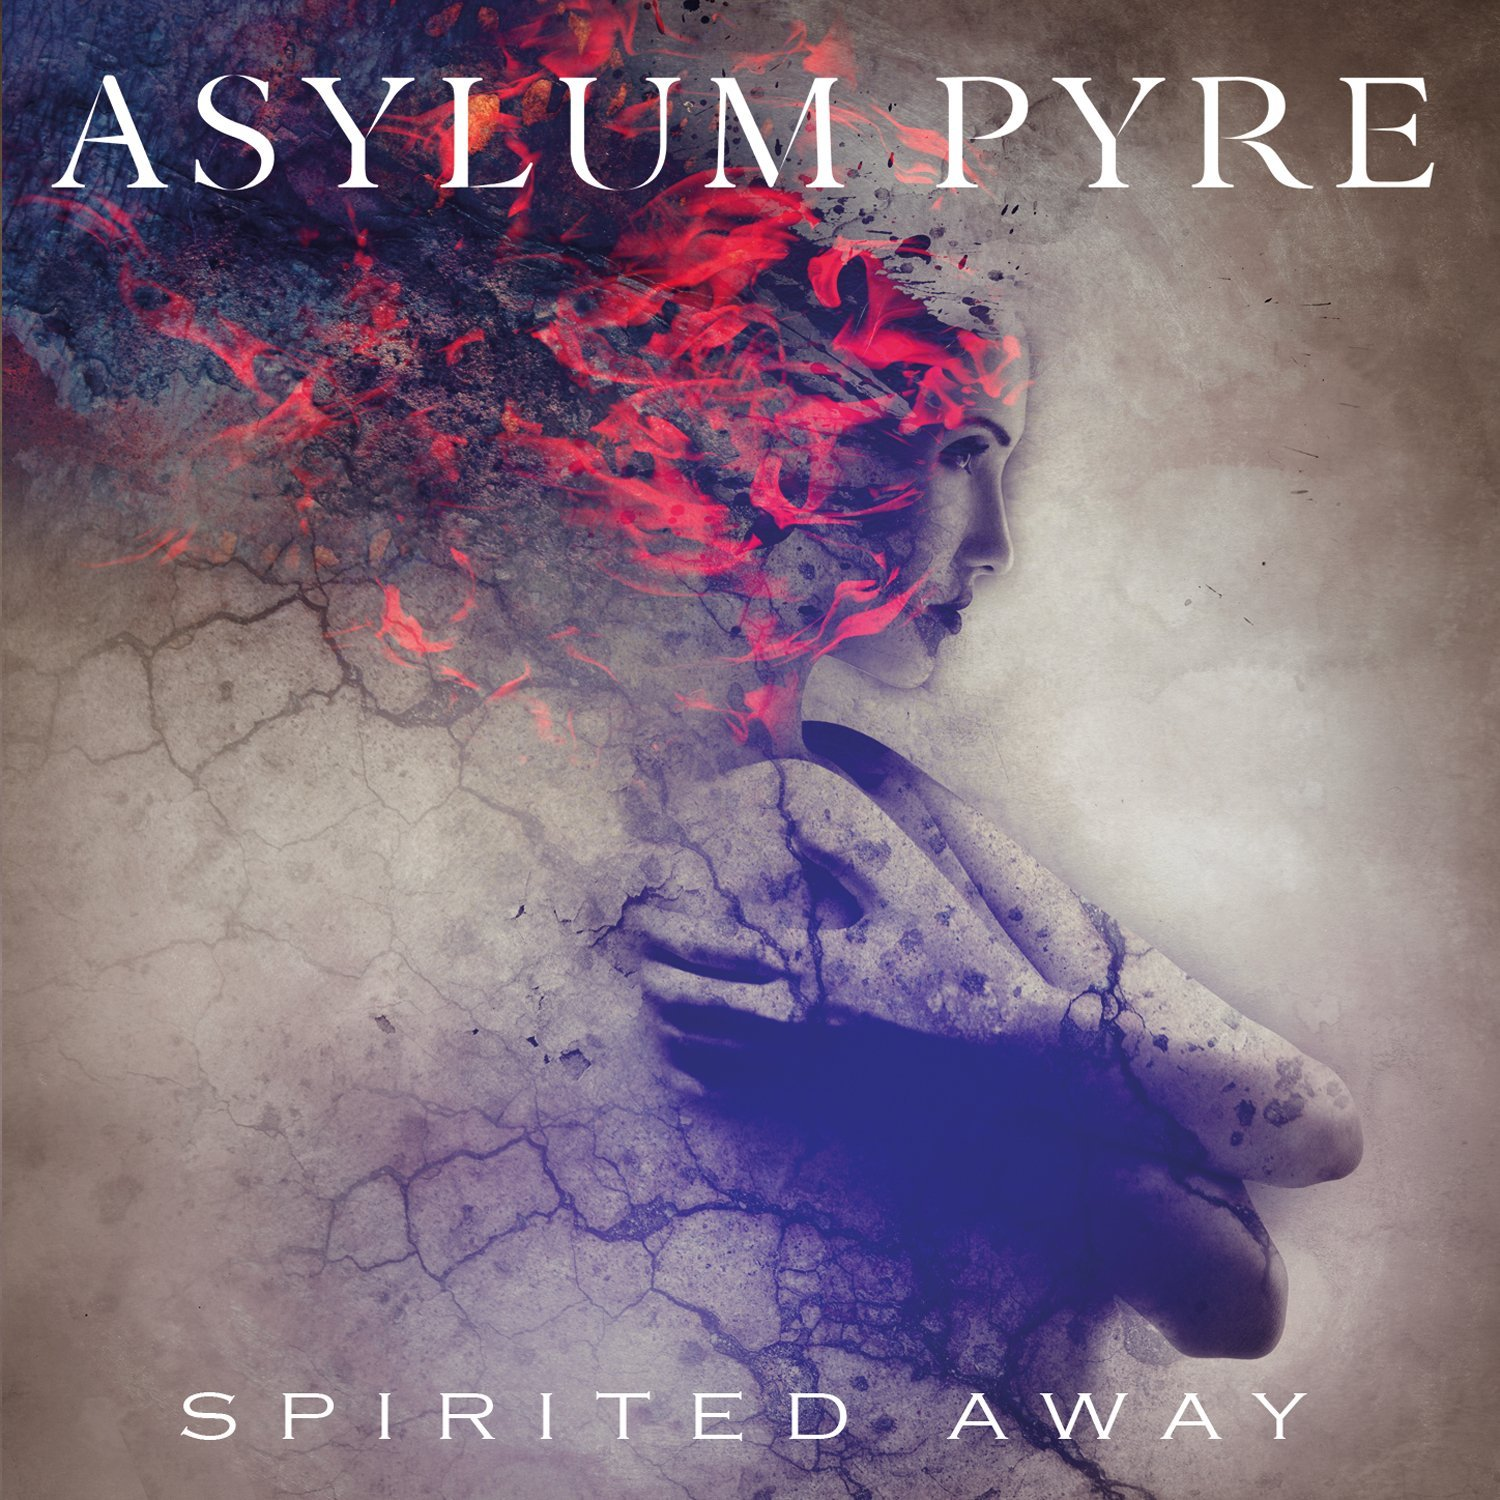 Asylum Pyre Spirited Away Cd Mbm Music Buy Mail